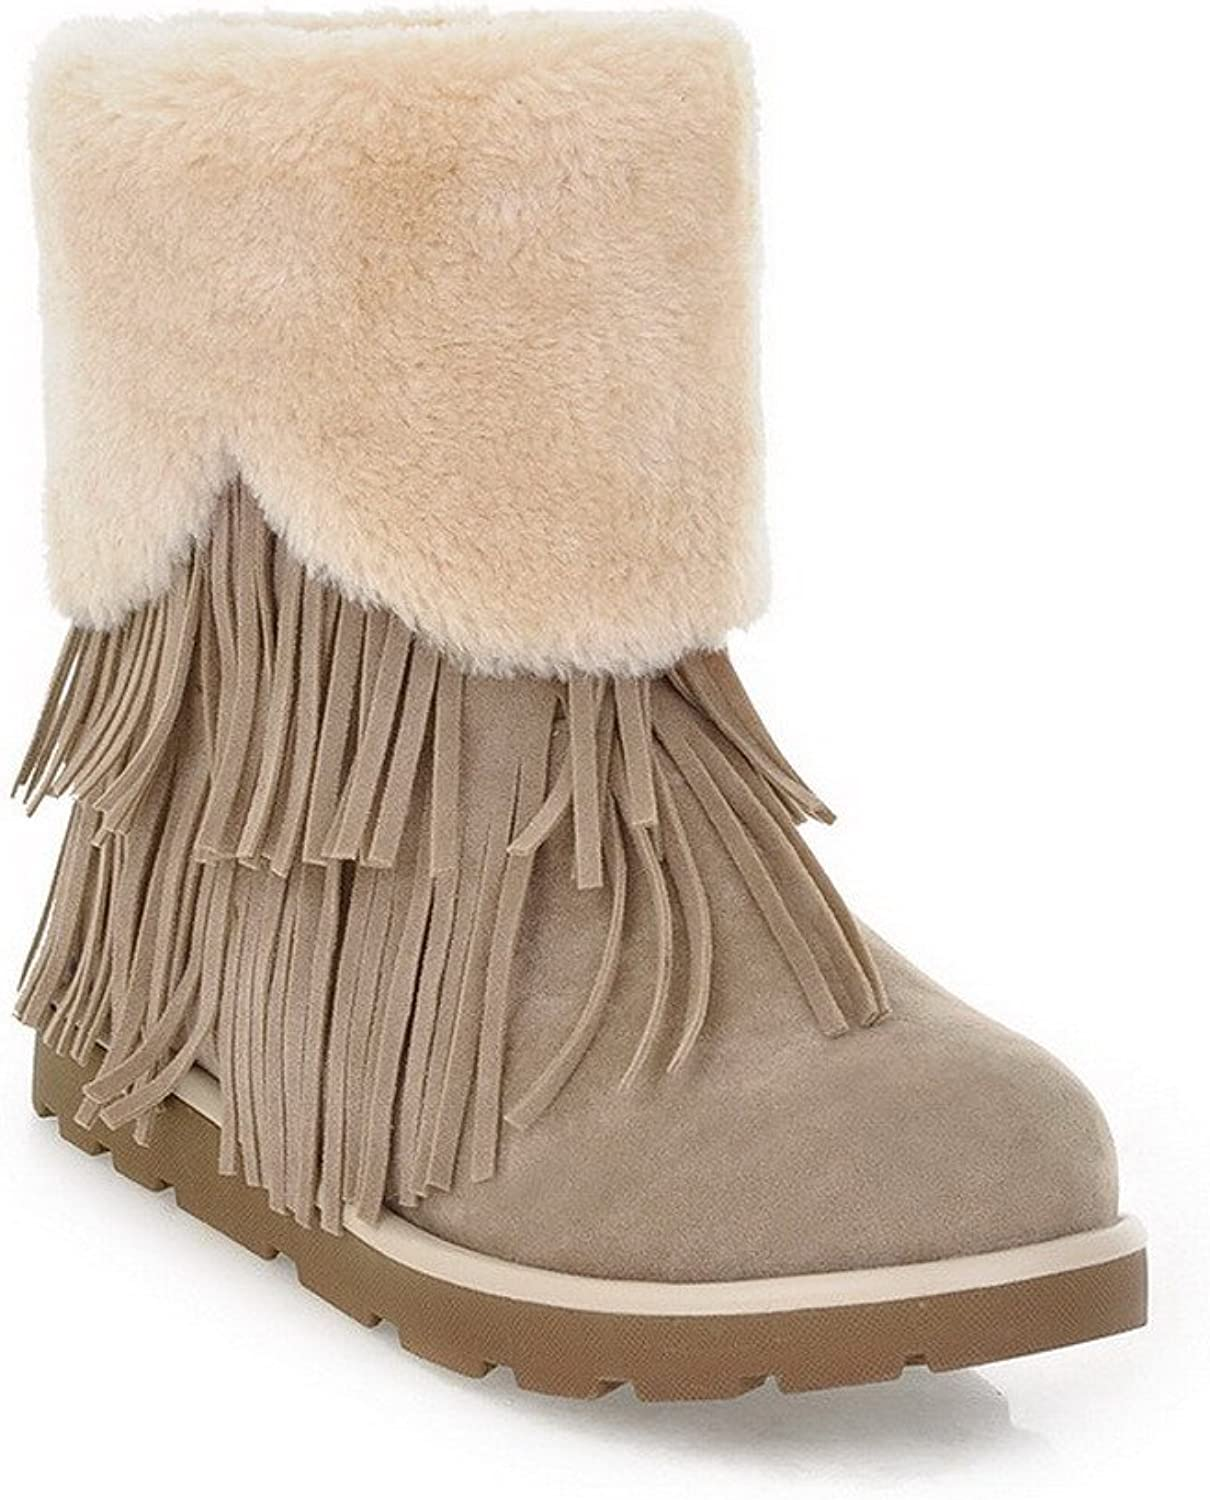 AmoonyFashion Womens Round Closed Toe Low Heels PU Frosted Imitated Lamb Wool Solid Boots with Tassels, Beige, 7.5 B(M) US